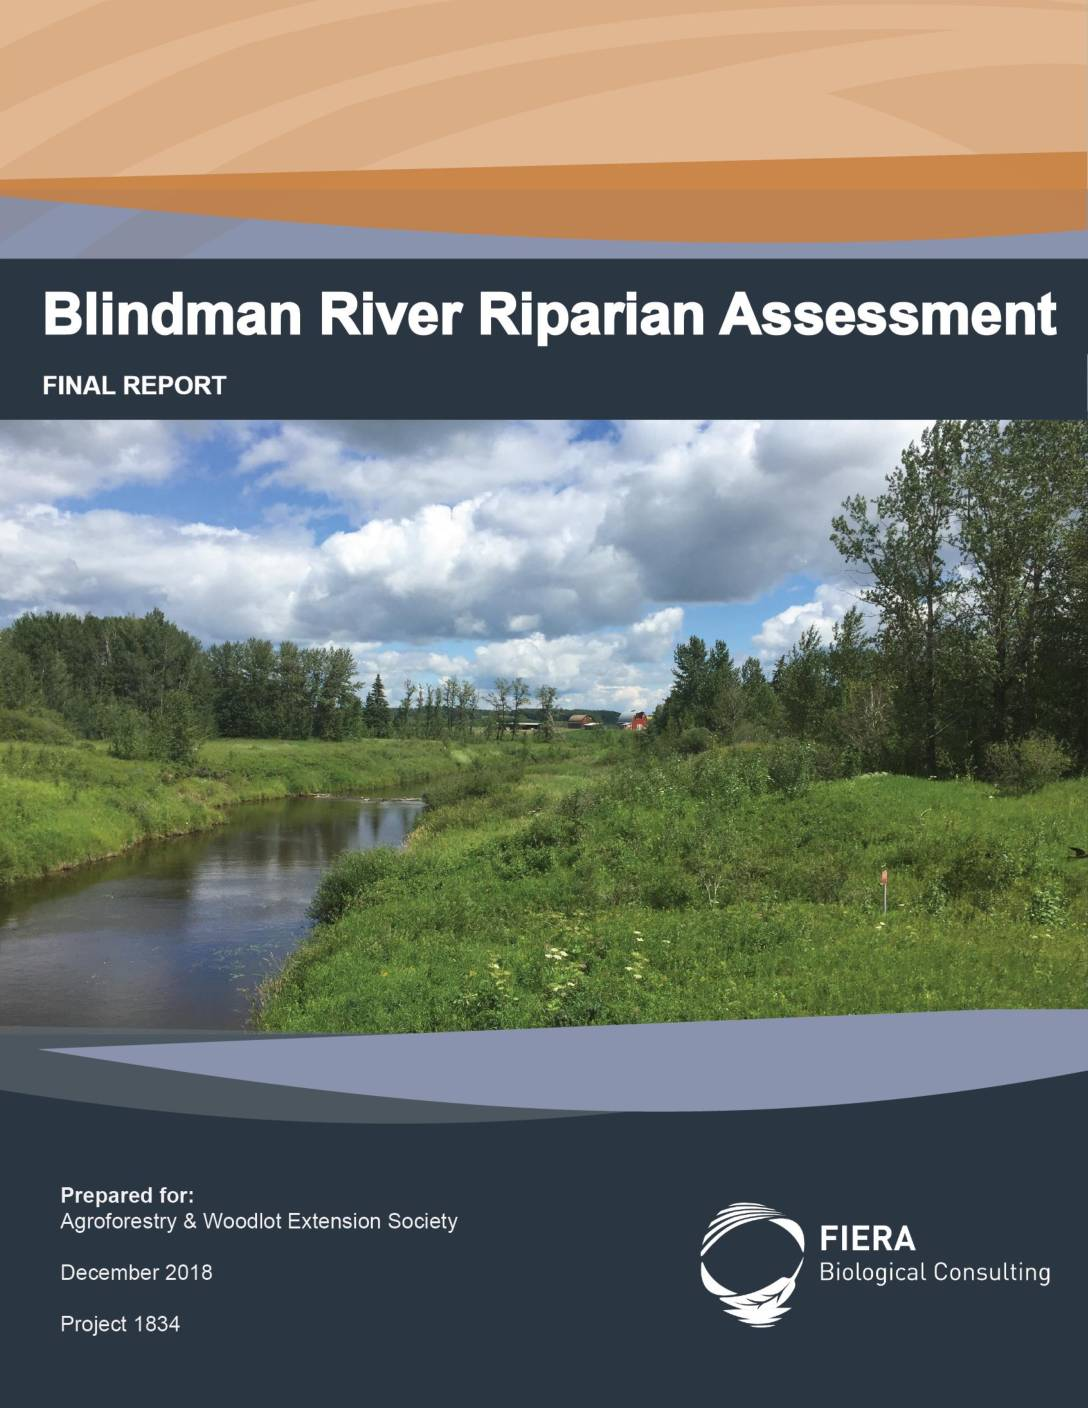 Blindman River Riparian Assessment: Final Report